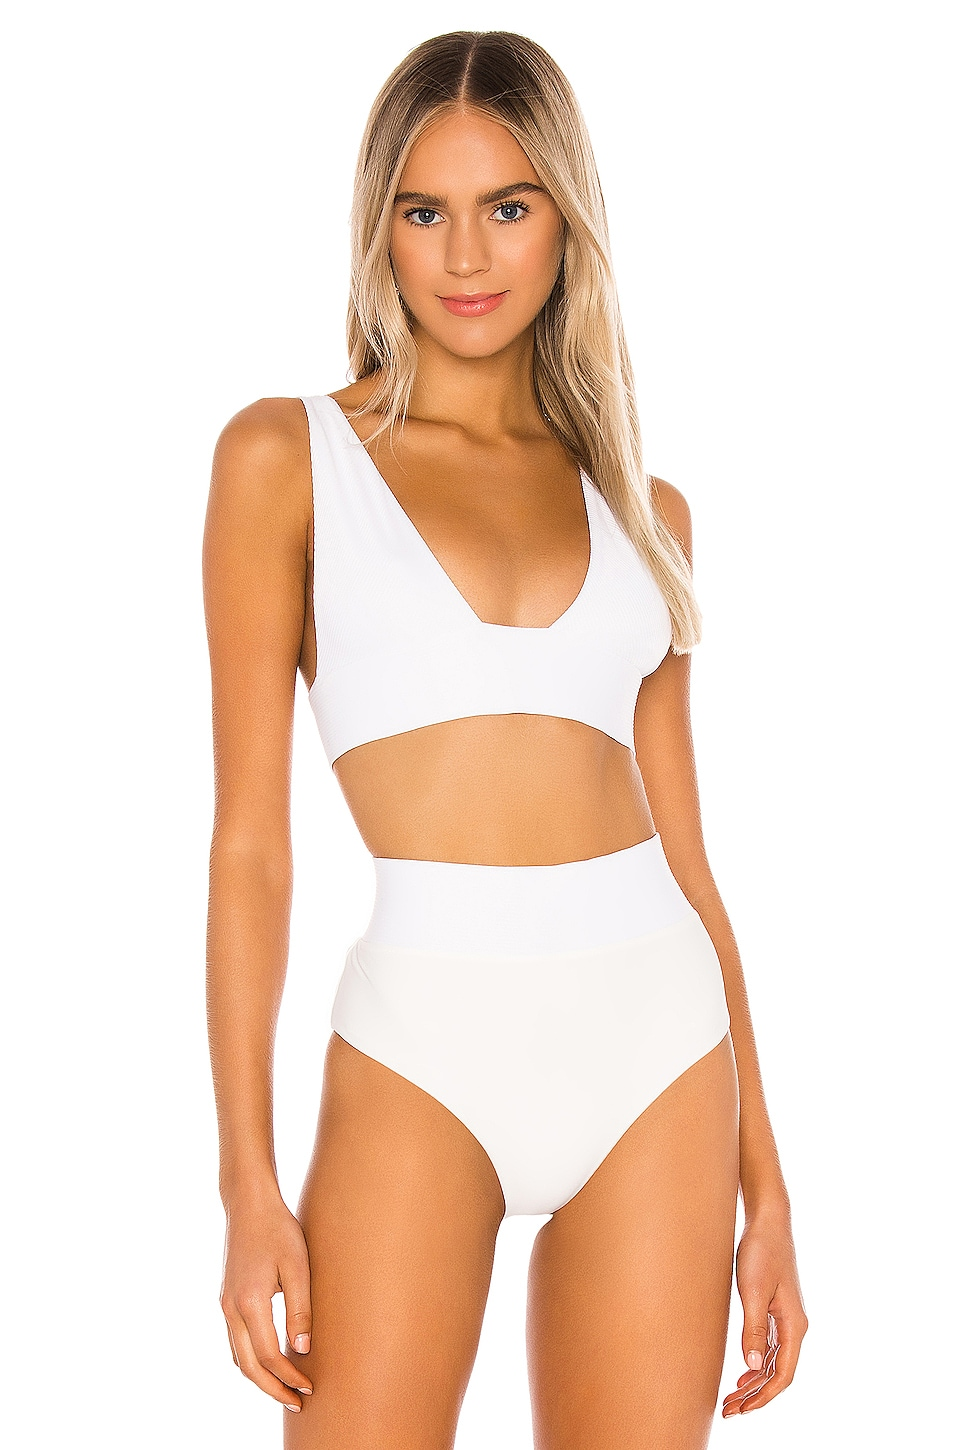 lovewave Lexi Top in White